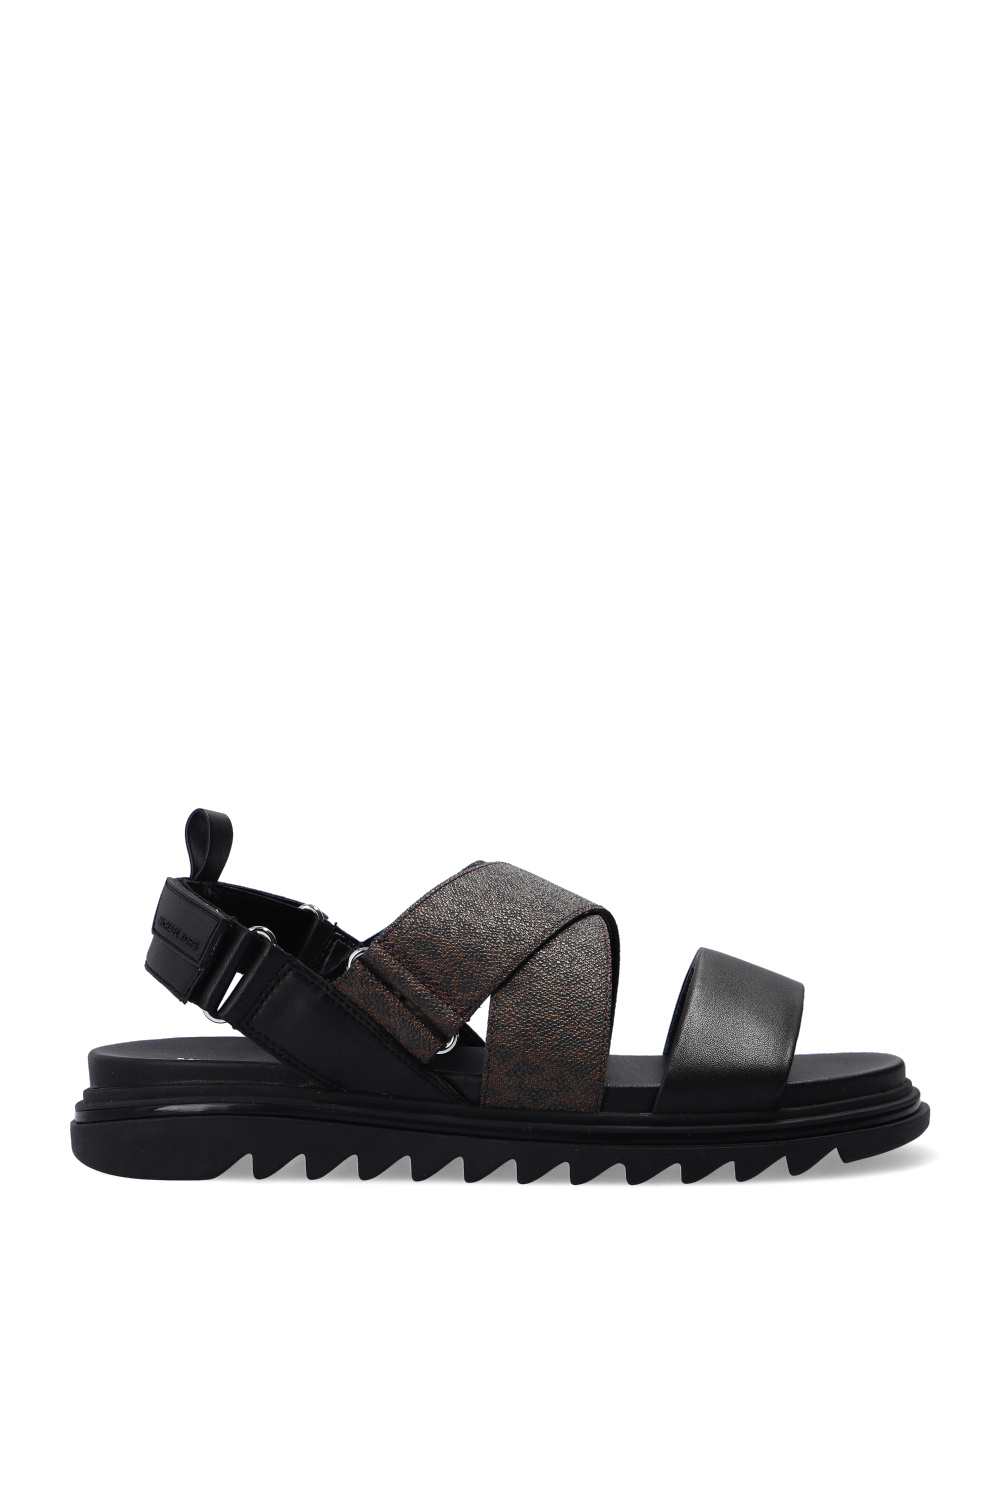 Michael Michael Kors 'Damon' sandals with logo